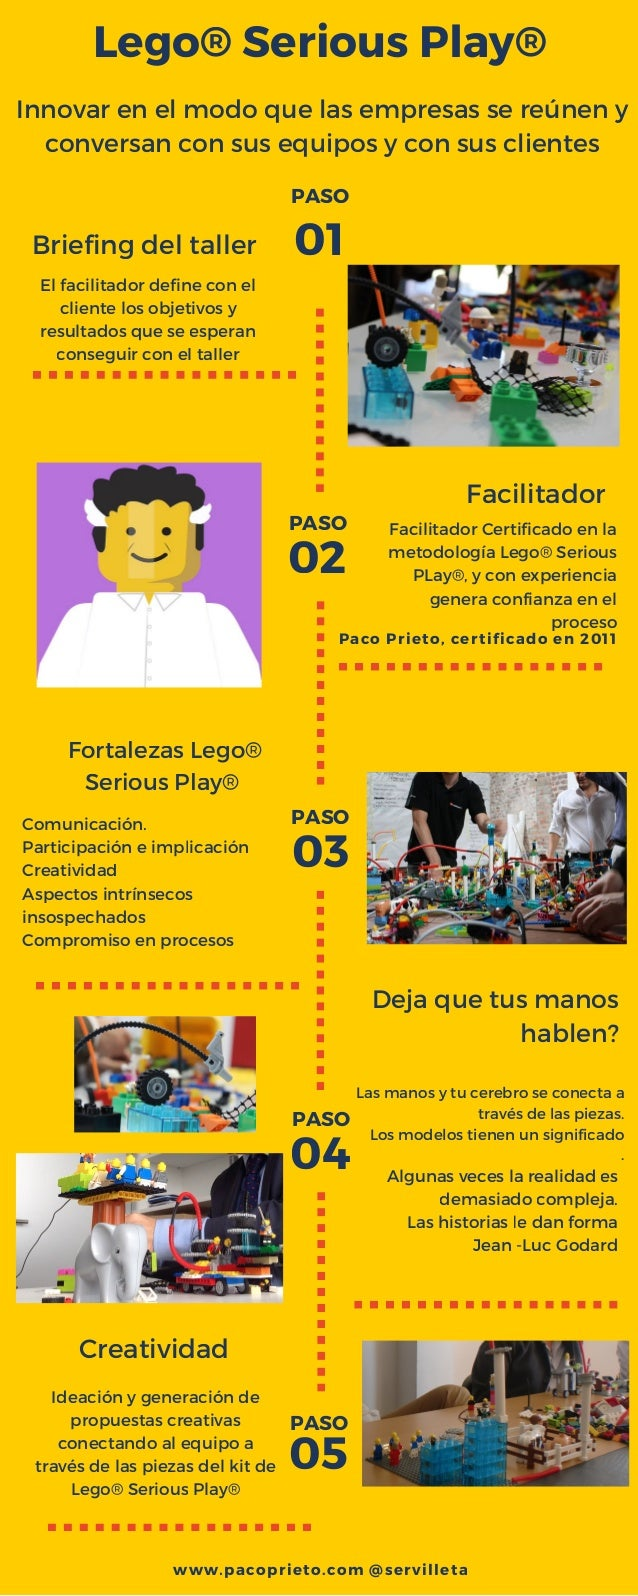 Lego® Serious Play® Briefing del taller Facilitador 03 Fortalezas Lego® Serious Play® 01 02 04 05 Creatividad El facilitad...